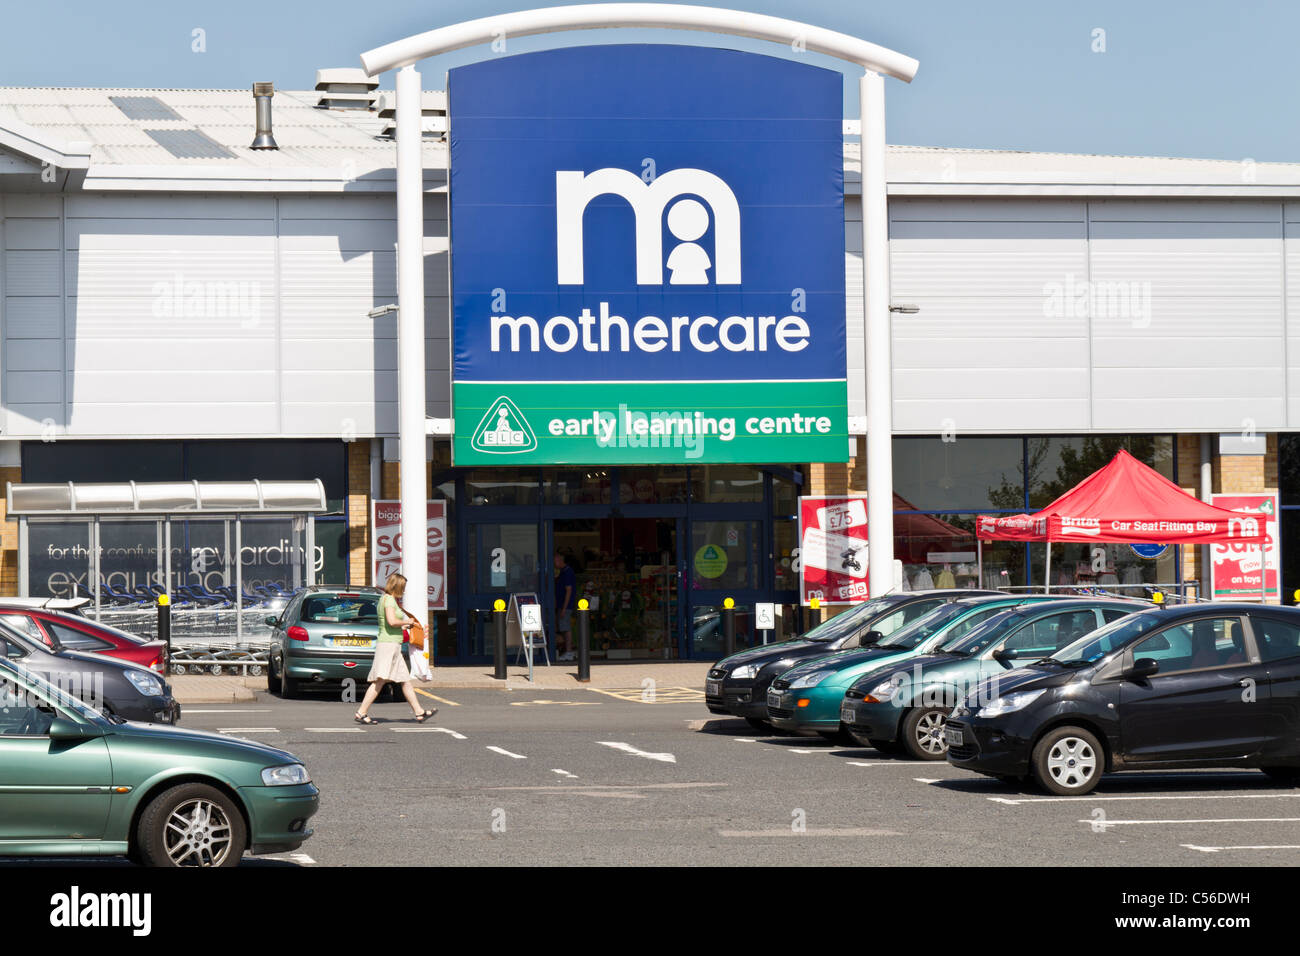 Entrance to Mothercare early learning centre - Stock Image